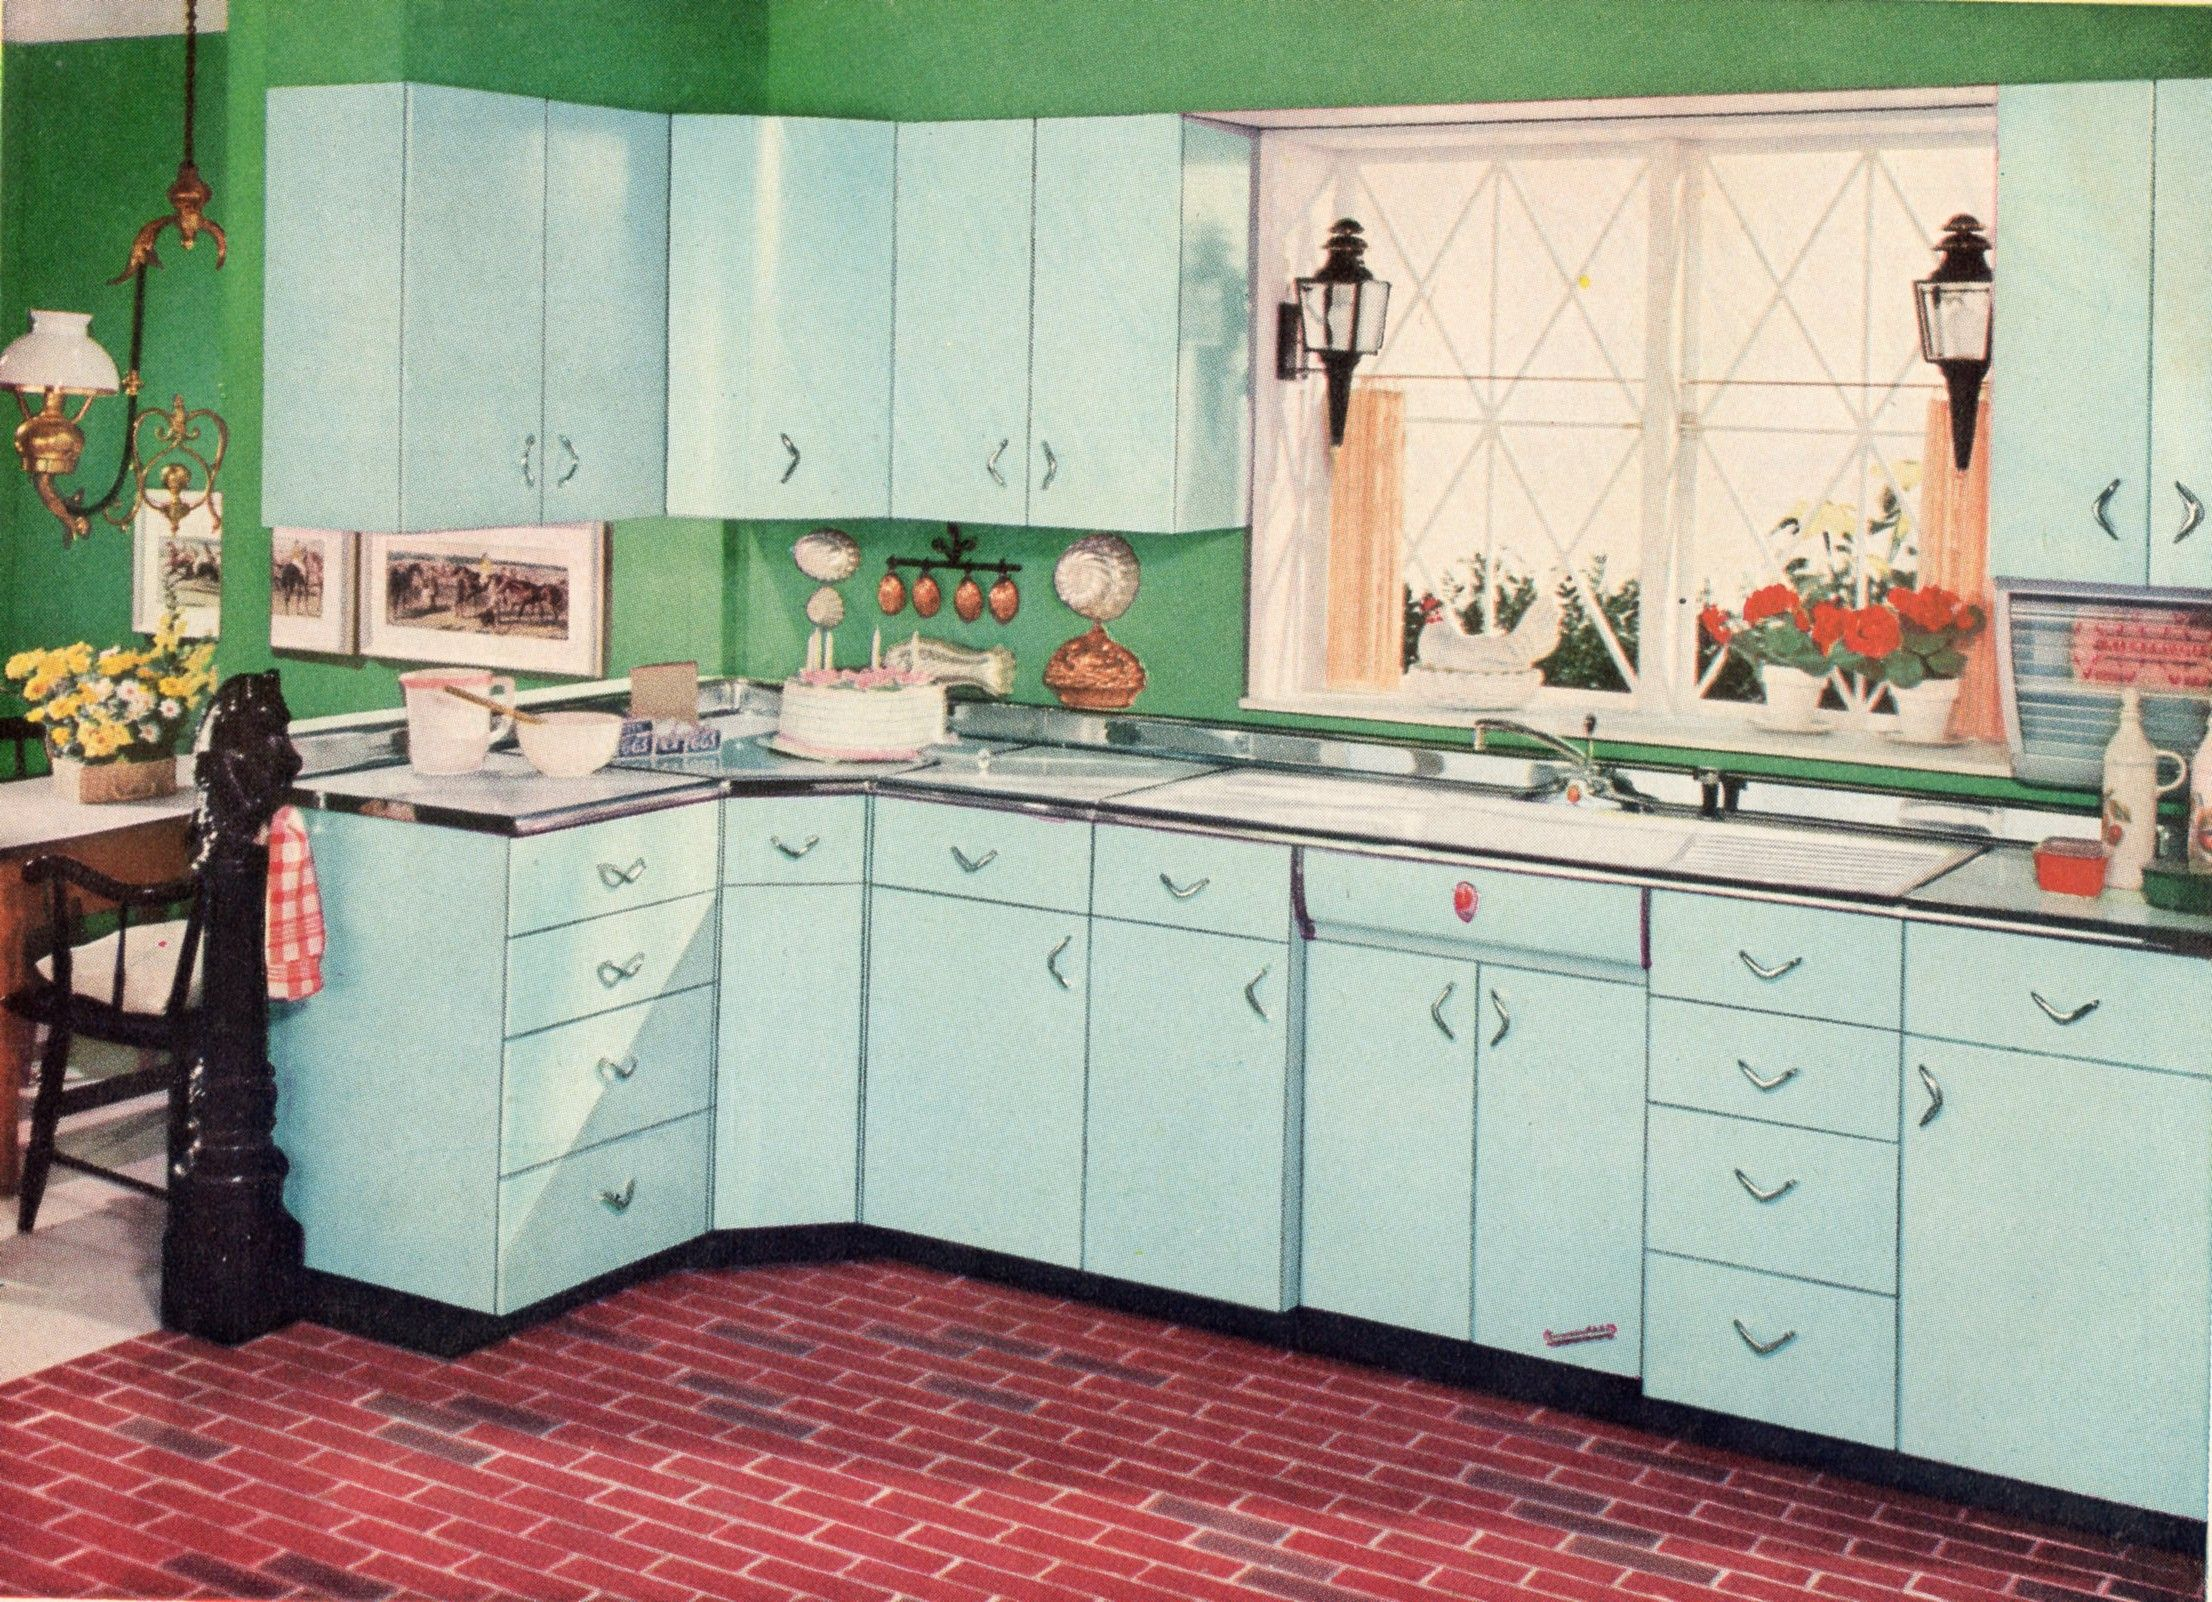 Youngstown aqua \'56 | Vintage Kitchens | Pinterest | Aqua, Vintage ...